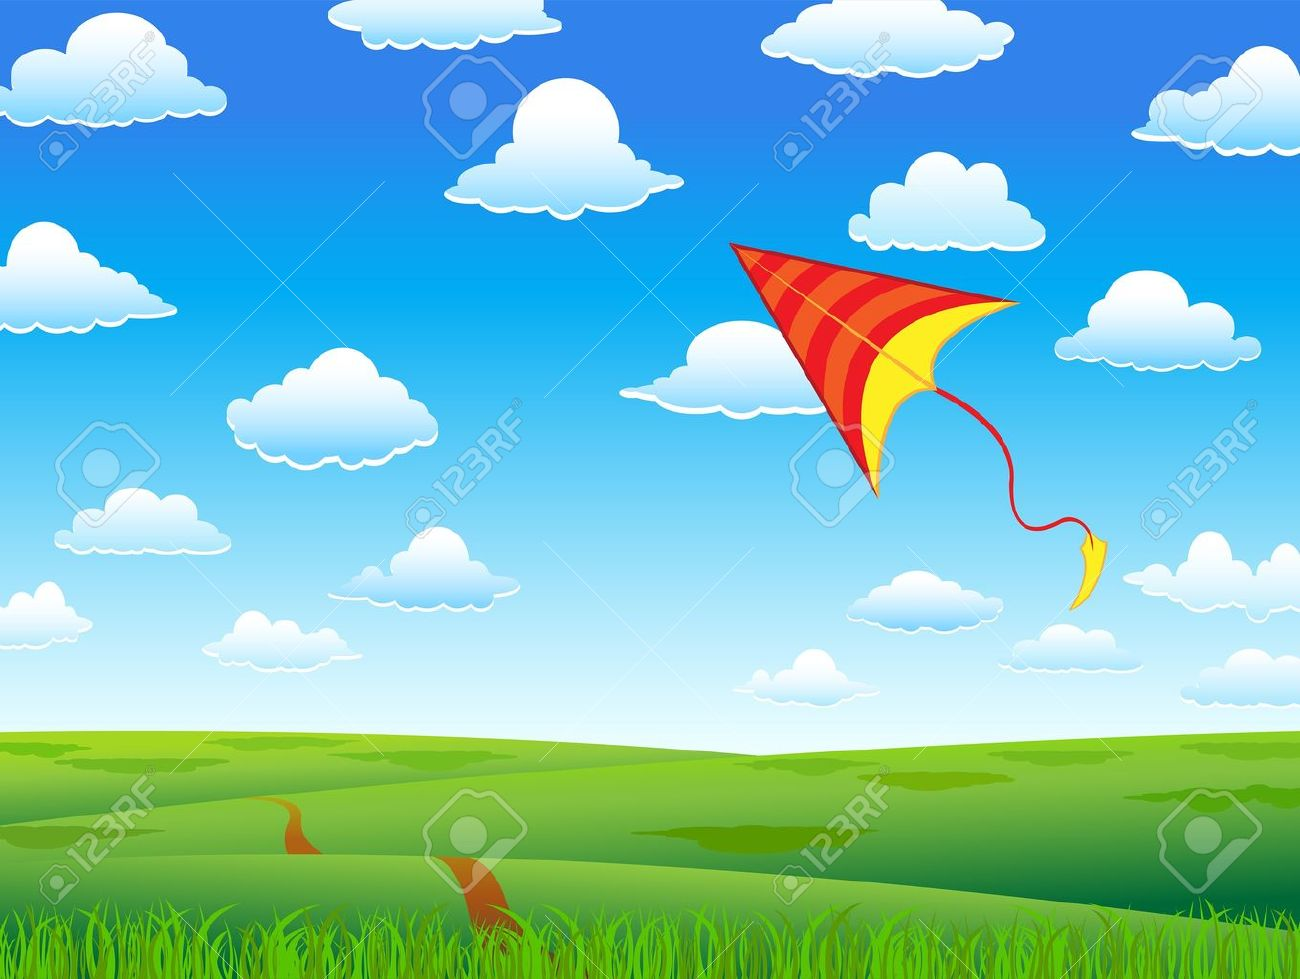 Kite Background with red kite and clouds